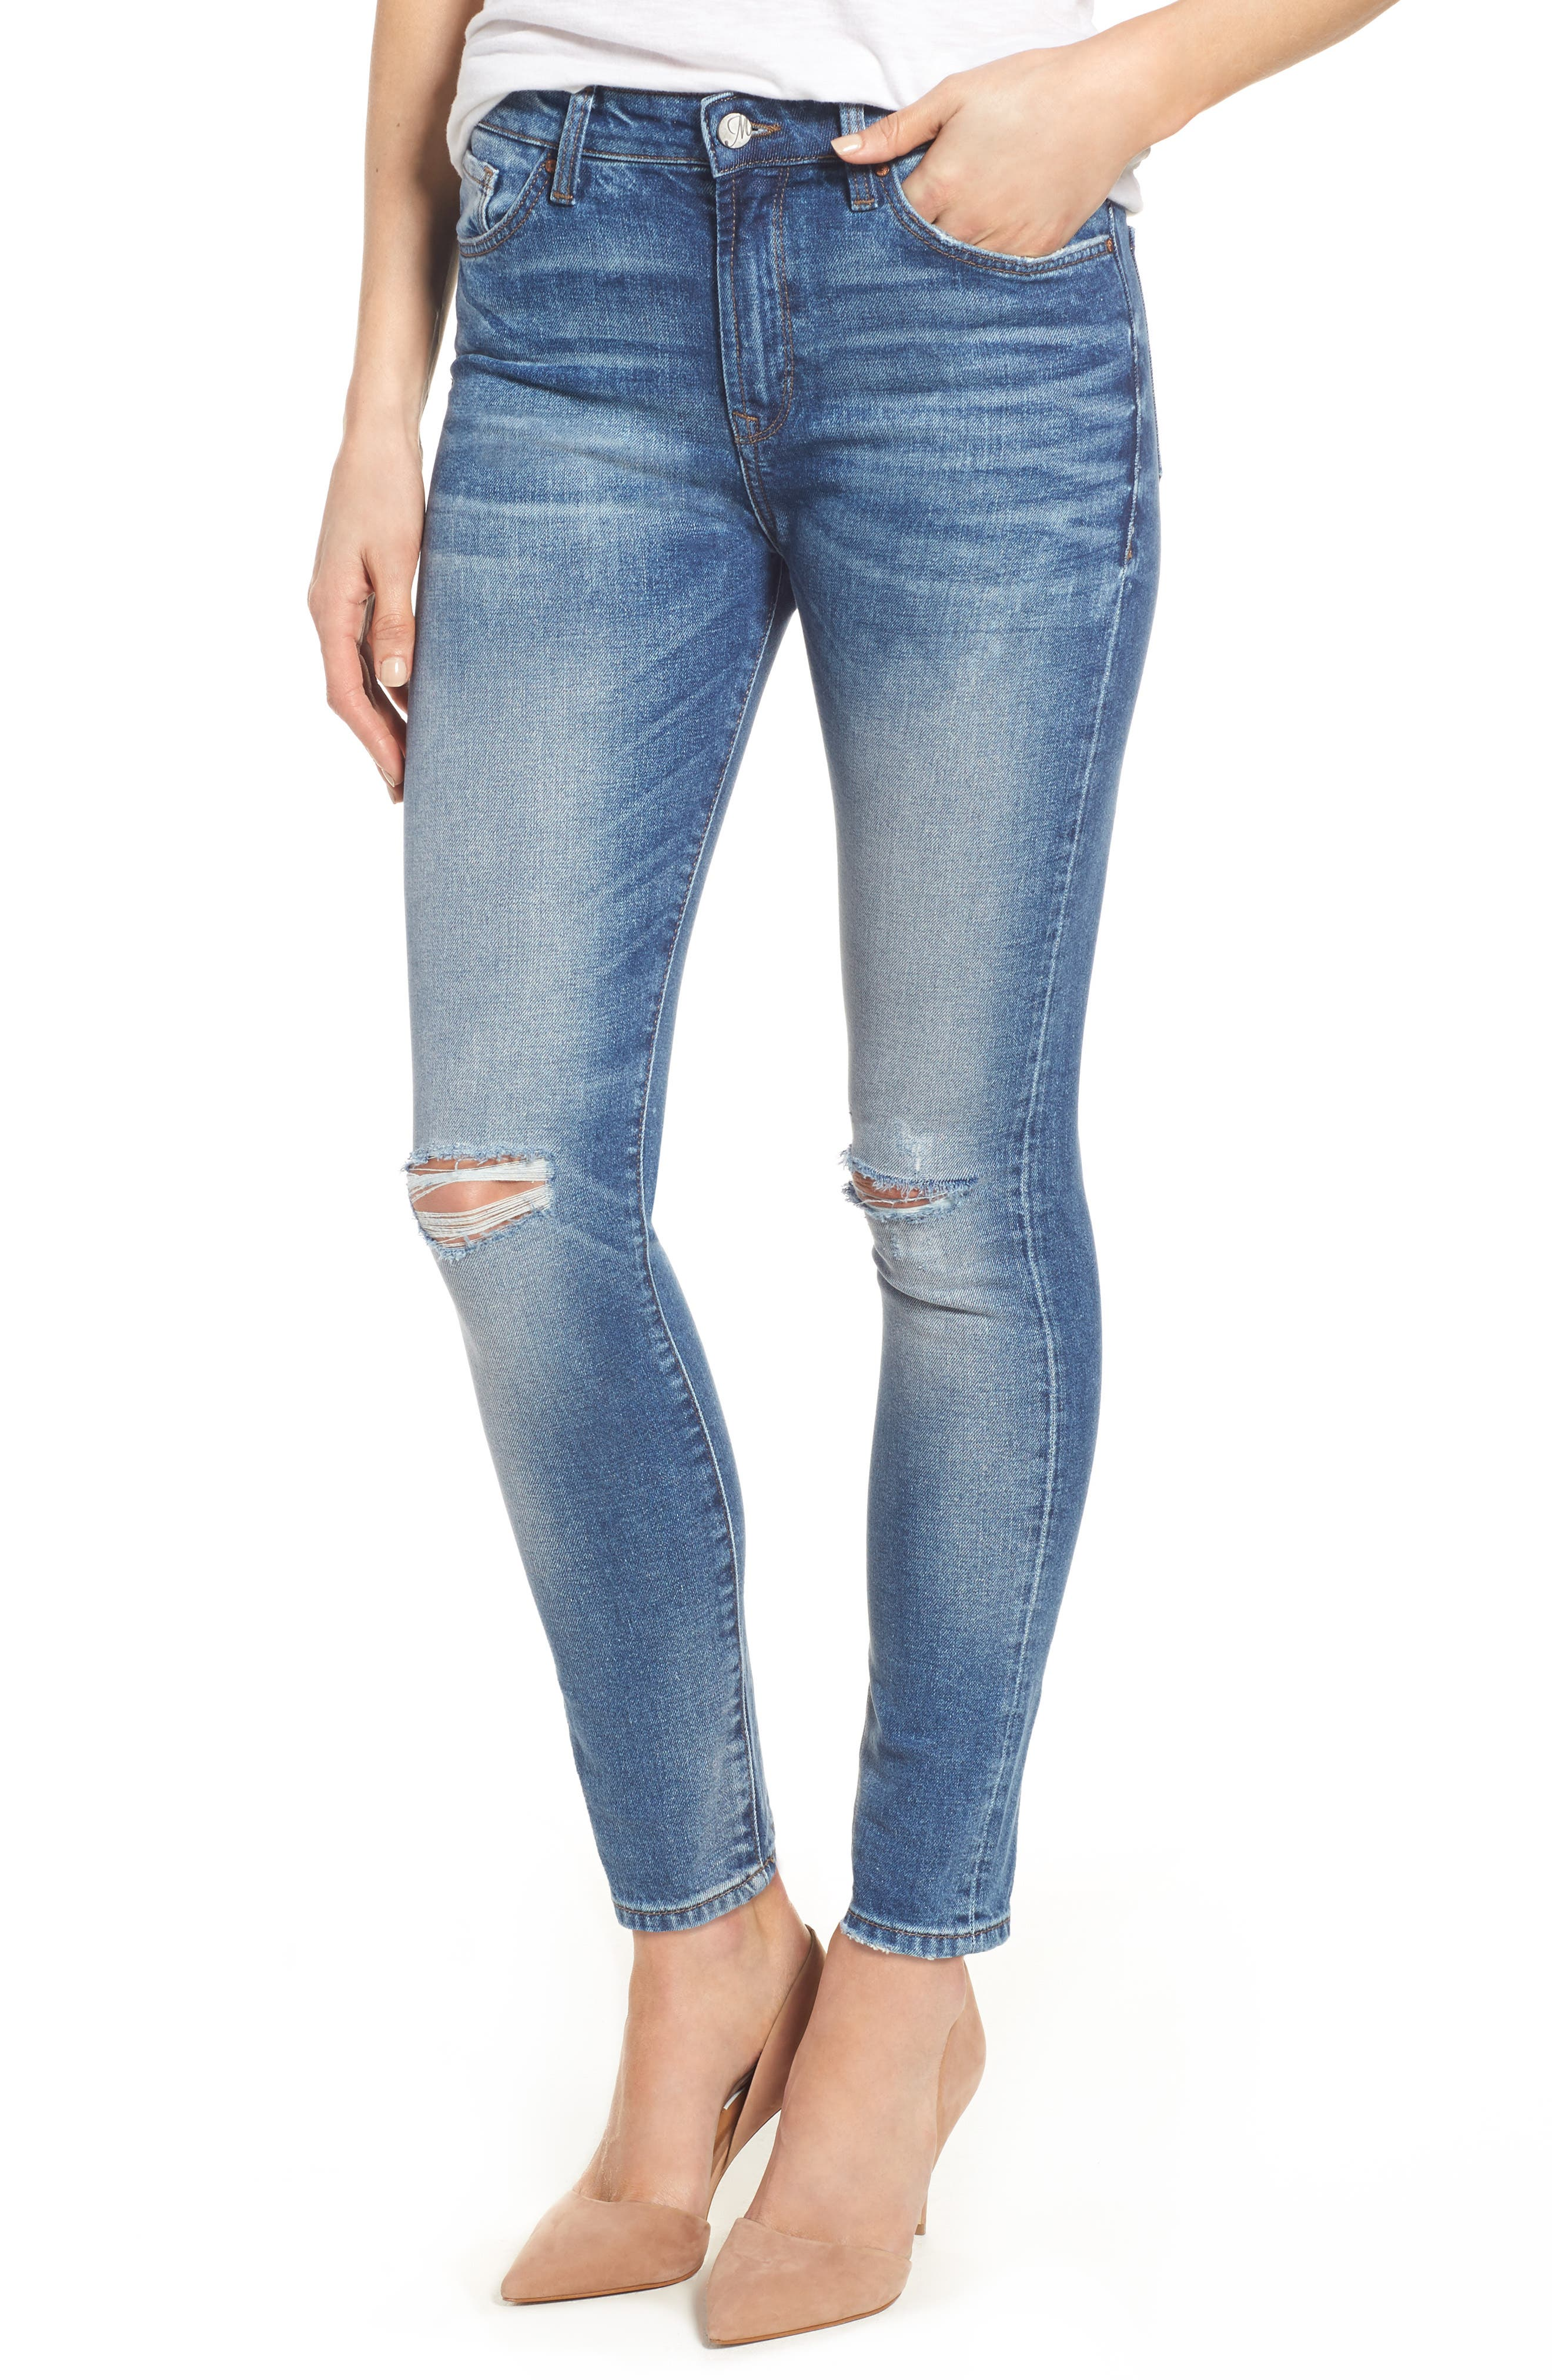 Alternate Image 1 Selected - Mavi Jeans Lucy Ripped Skinny Jeans (Foggy)